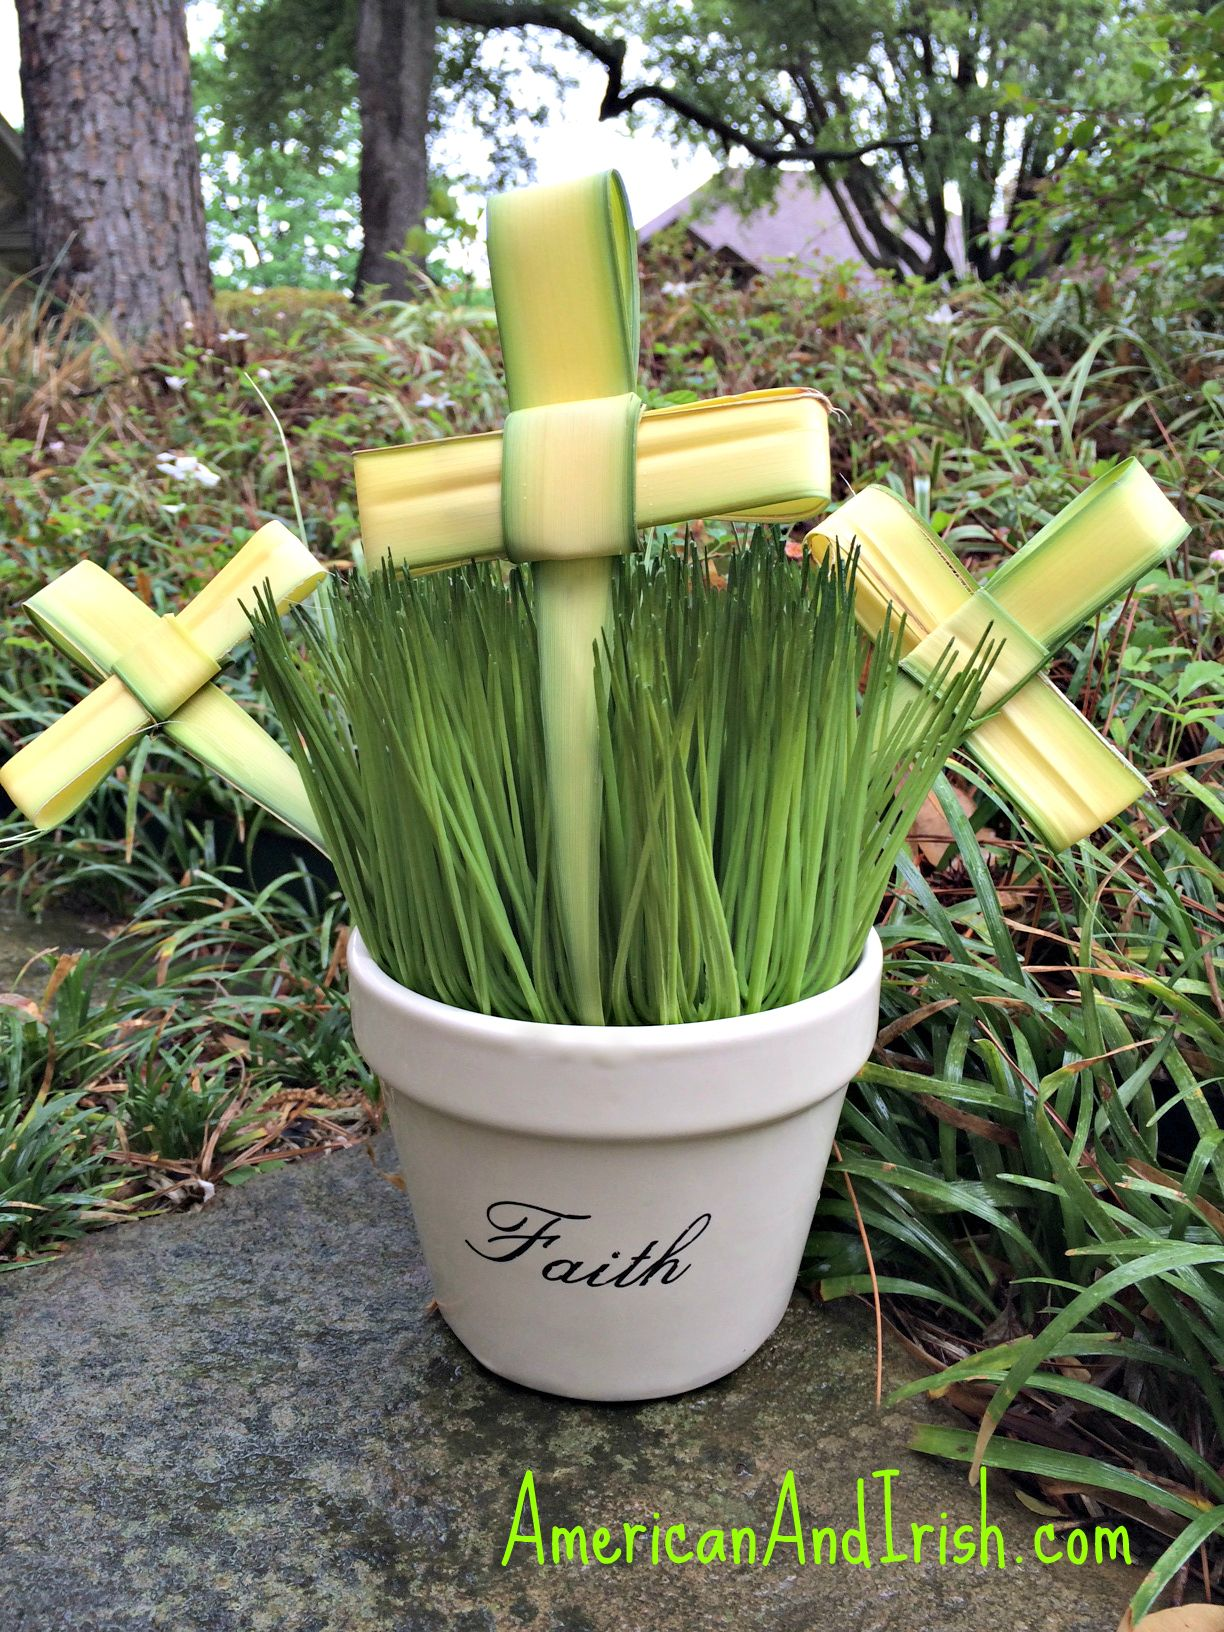 How To Fold The Palms From Church Into A Cross